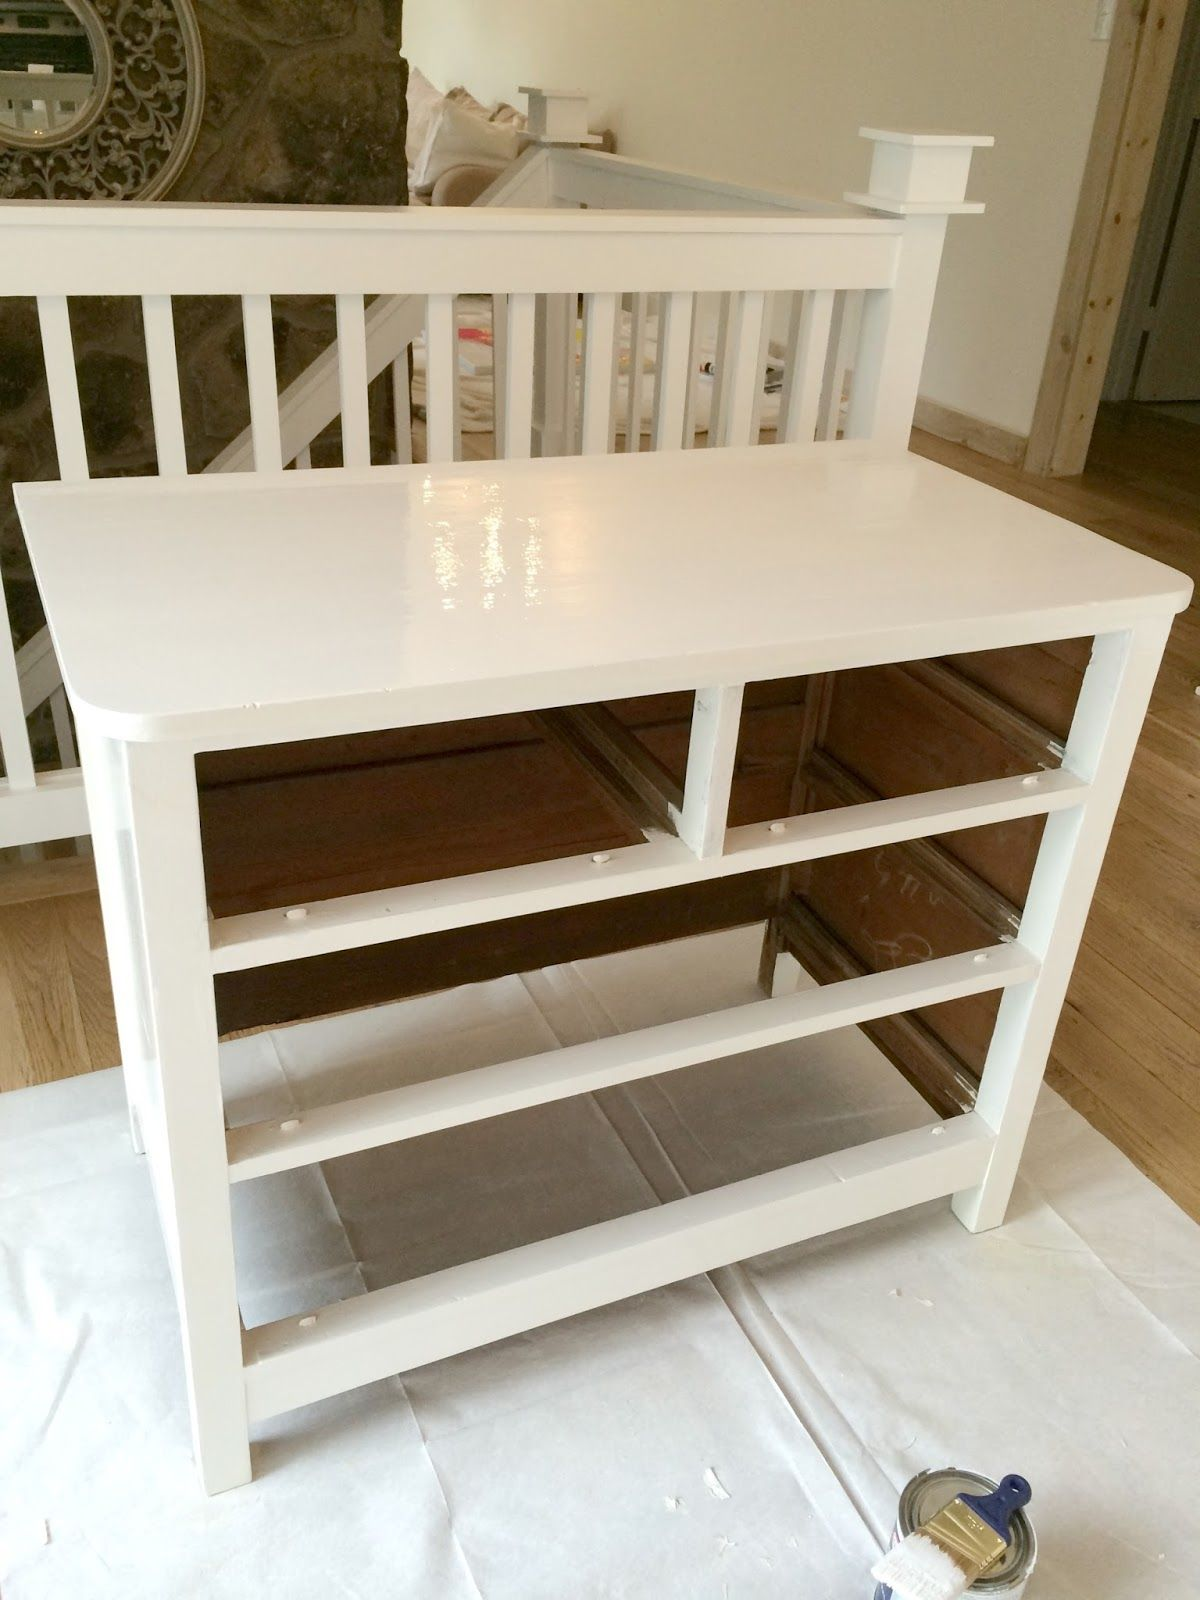 How To Paint Furniture The Easy Way High Gloss Furniture